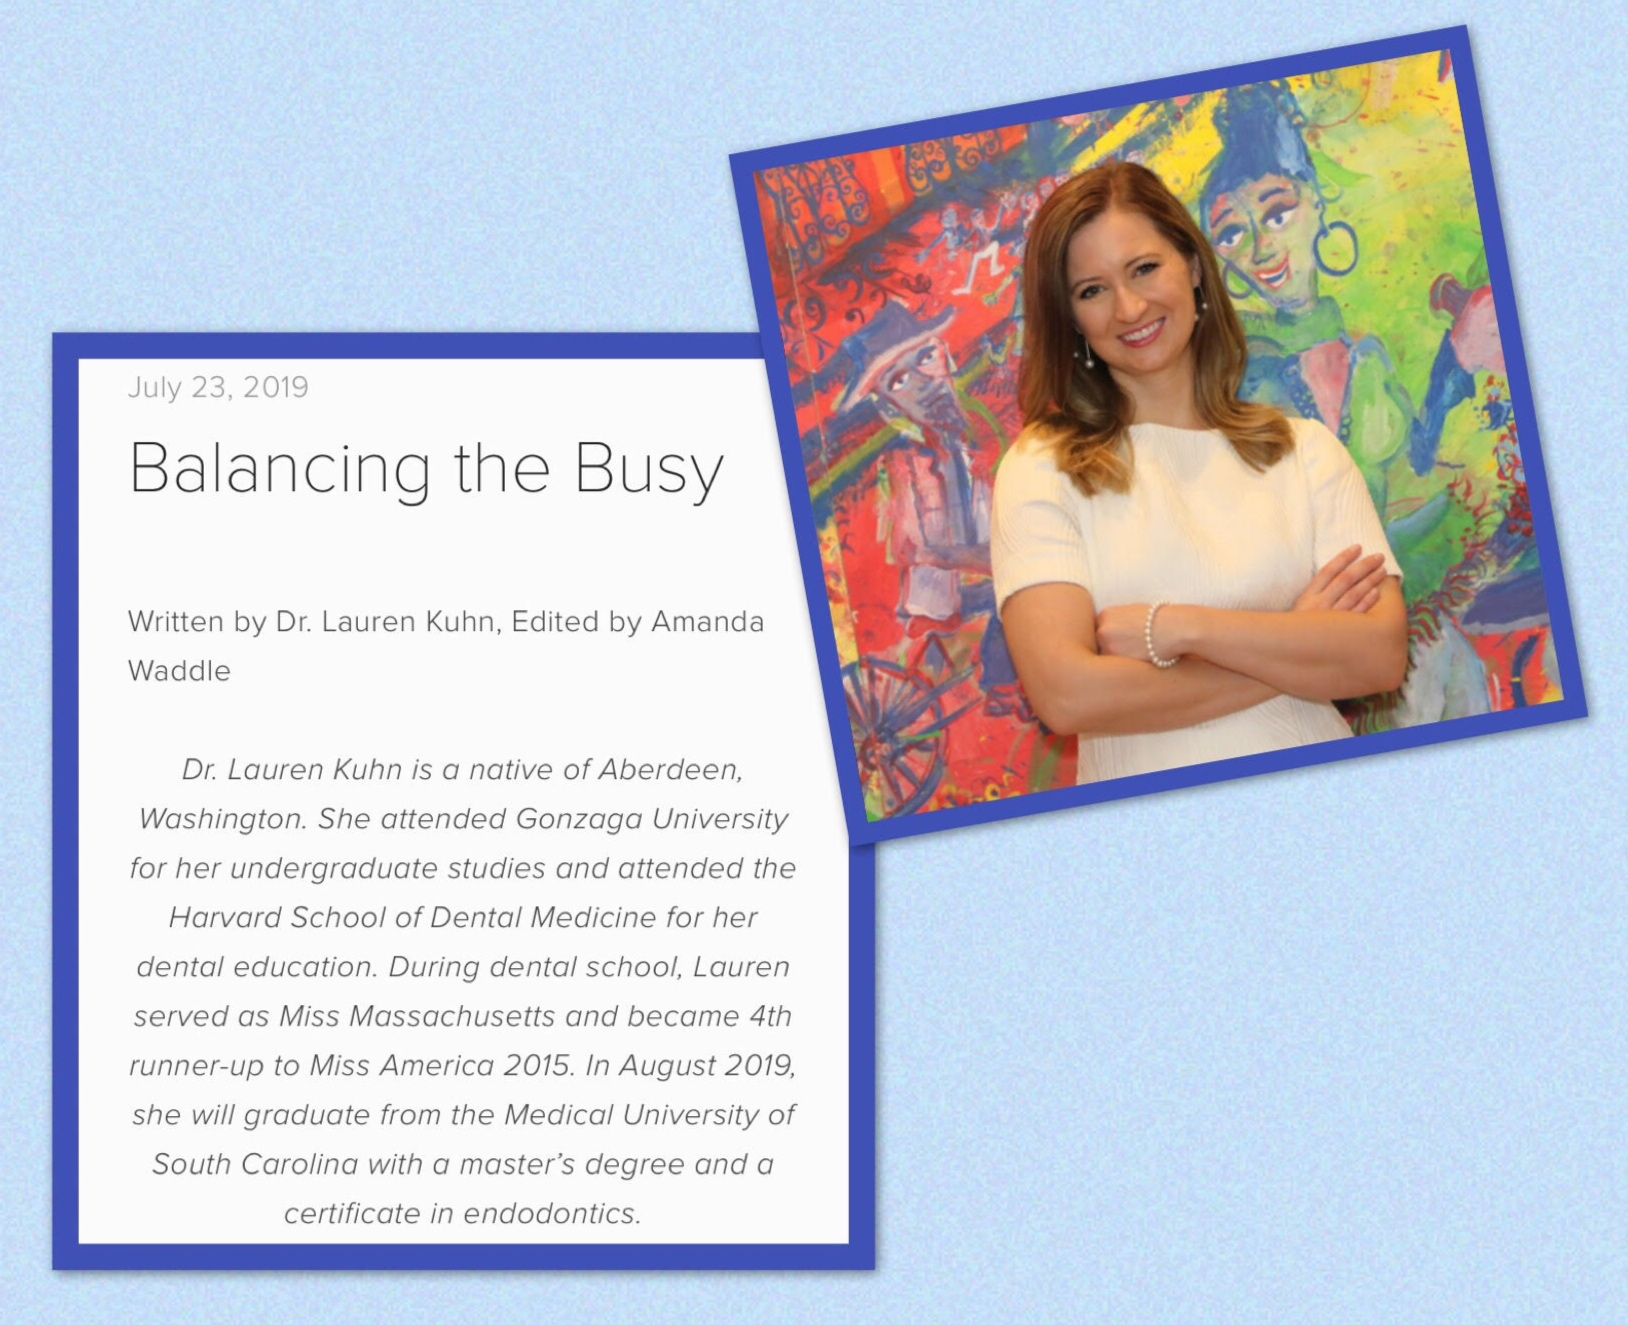 Marquette University - Lauren was asked to author a post on time management and study strategies for the Marquette University Chapter of the American Student Dental Association's website. It was published on July 23rd, 2019 and you can read it at the following website: https://www.marquetteasda.org/blog/balancing-the-busy